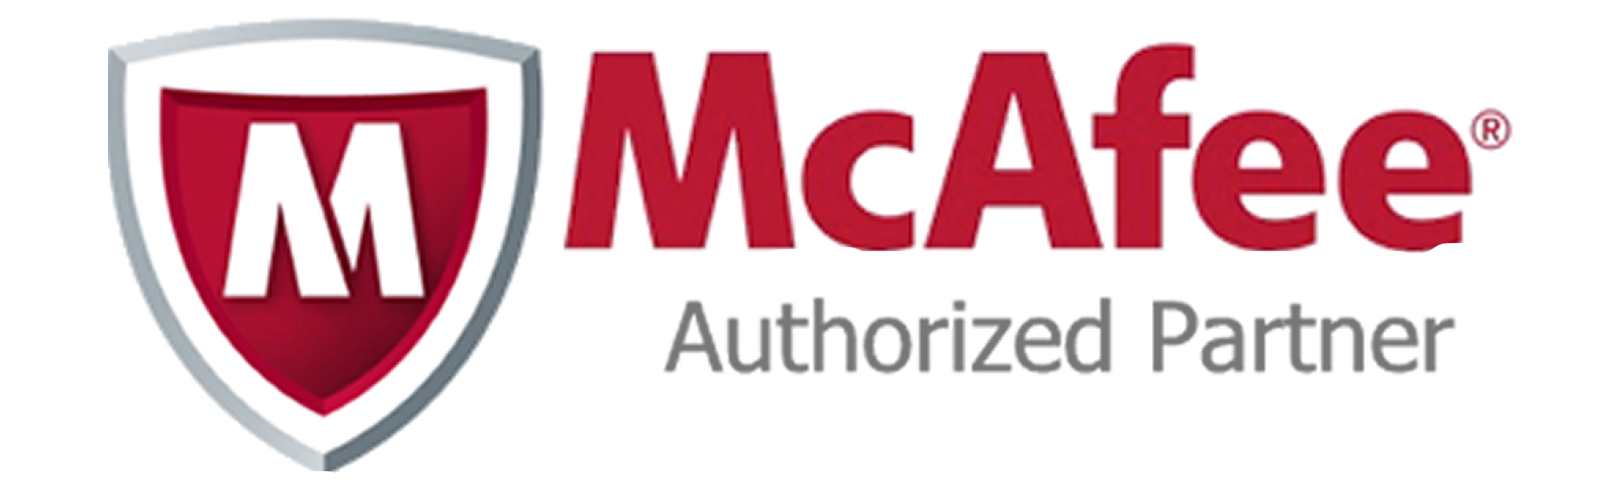 McAfee Partner in Pakistan plays an important role